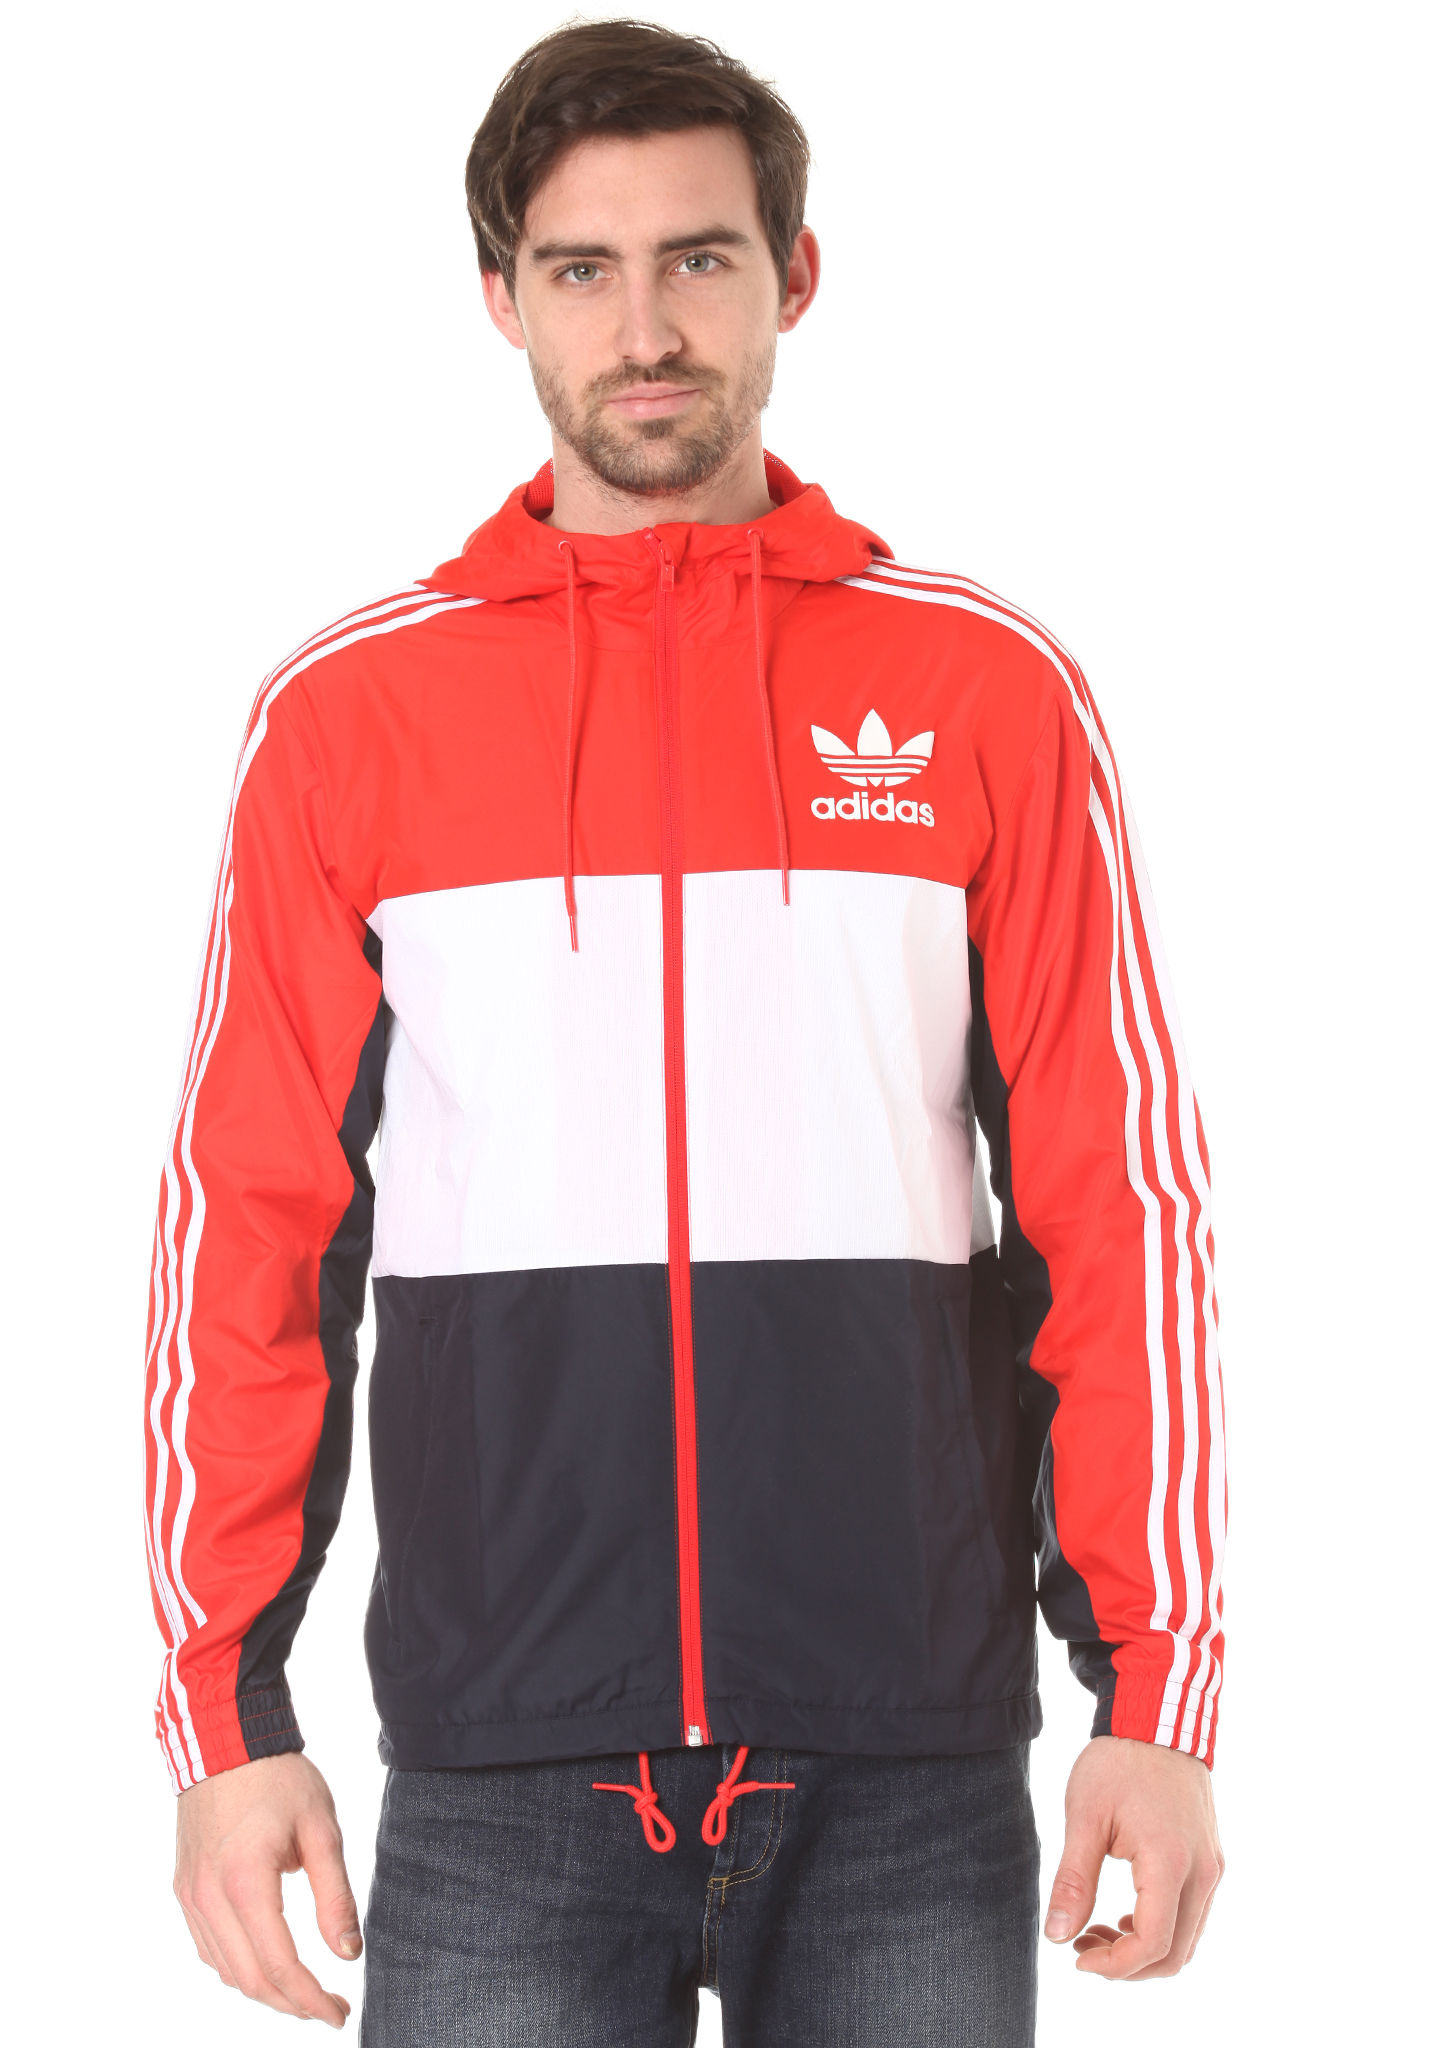 adidas trainingsjacke herren rot quark. Black Bedroom Furniture Sets. Home Design Ideas